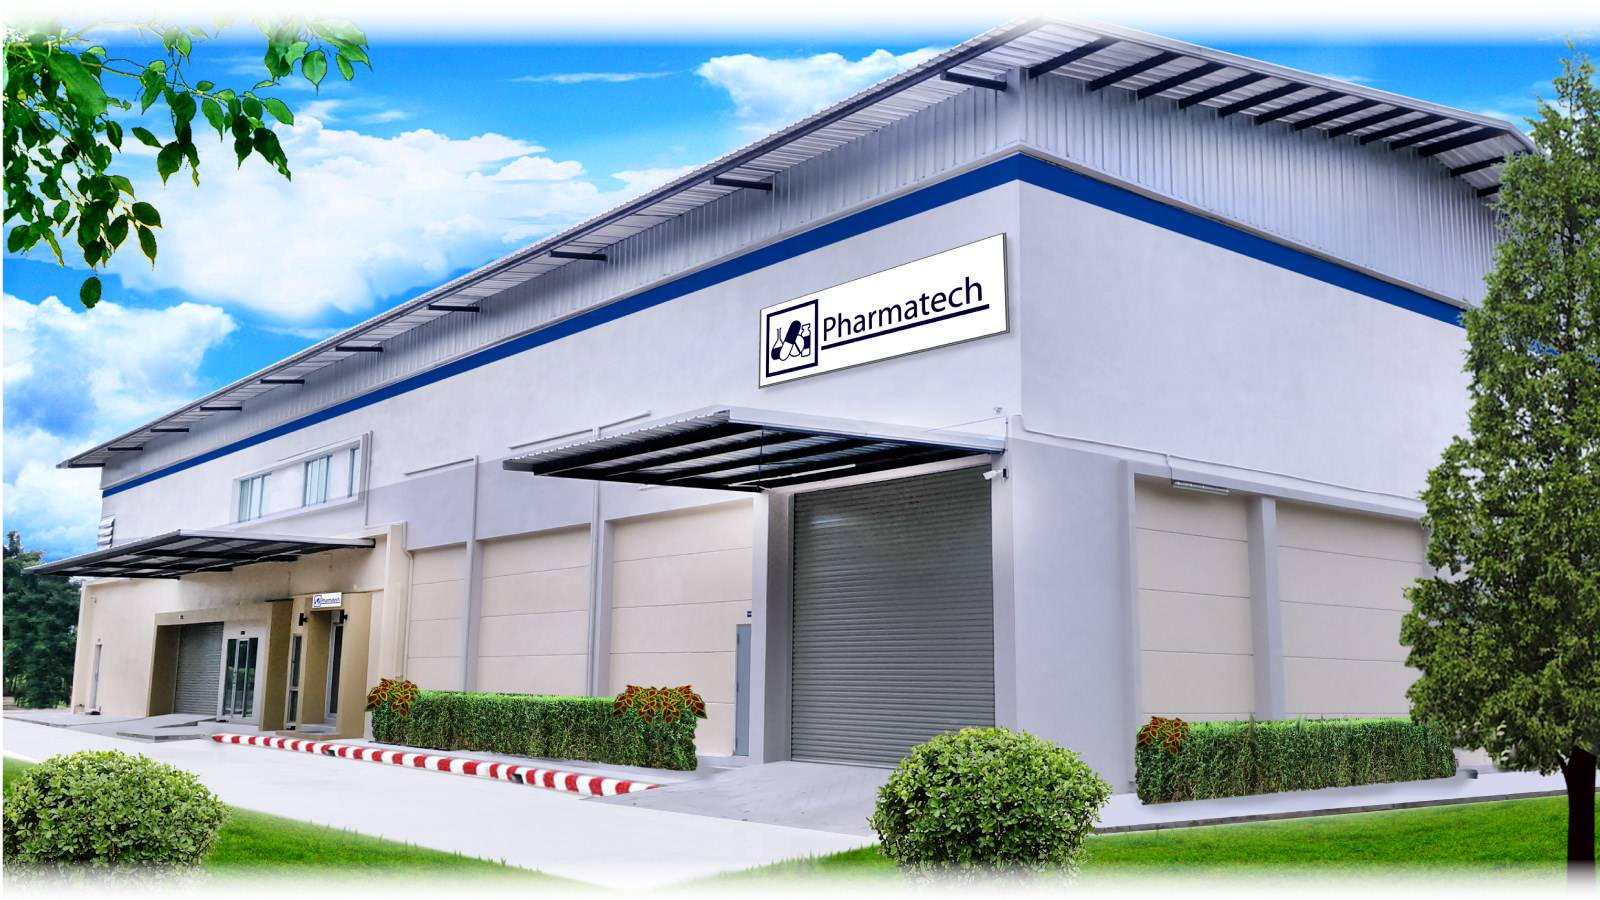 PHARMATECH BANDNER